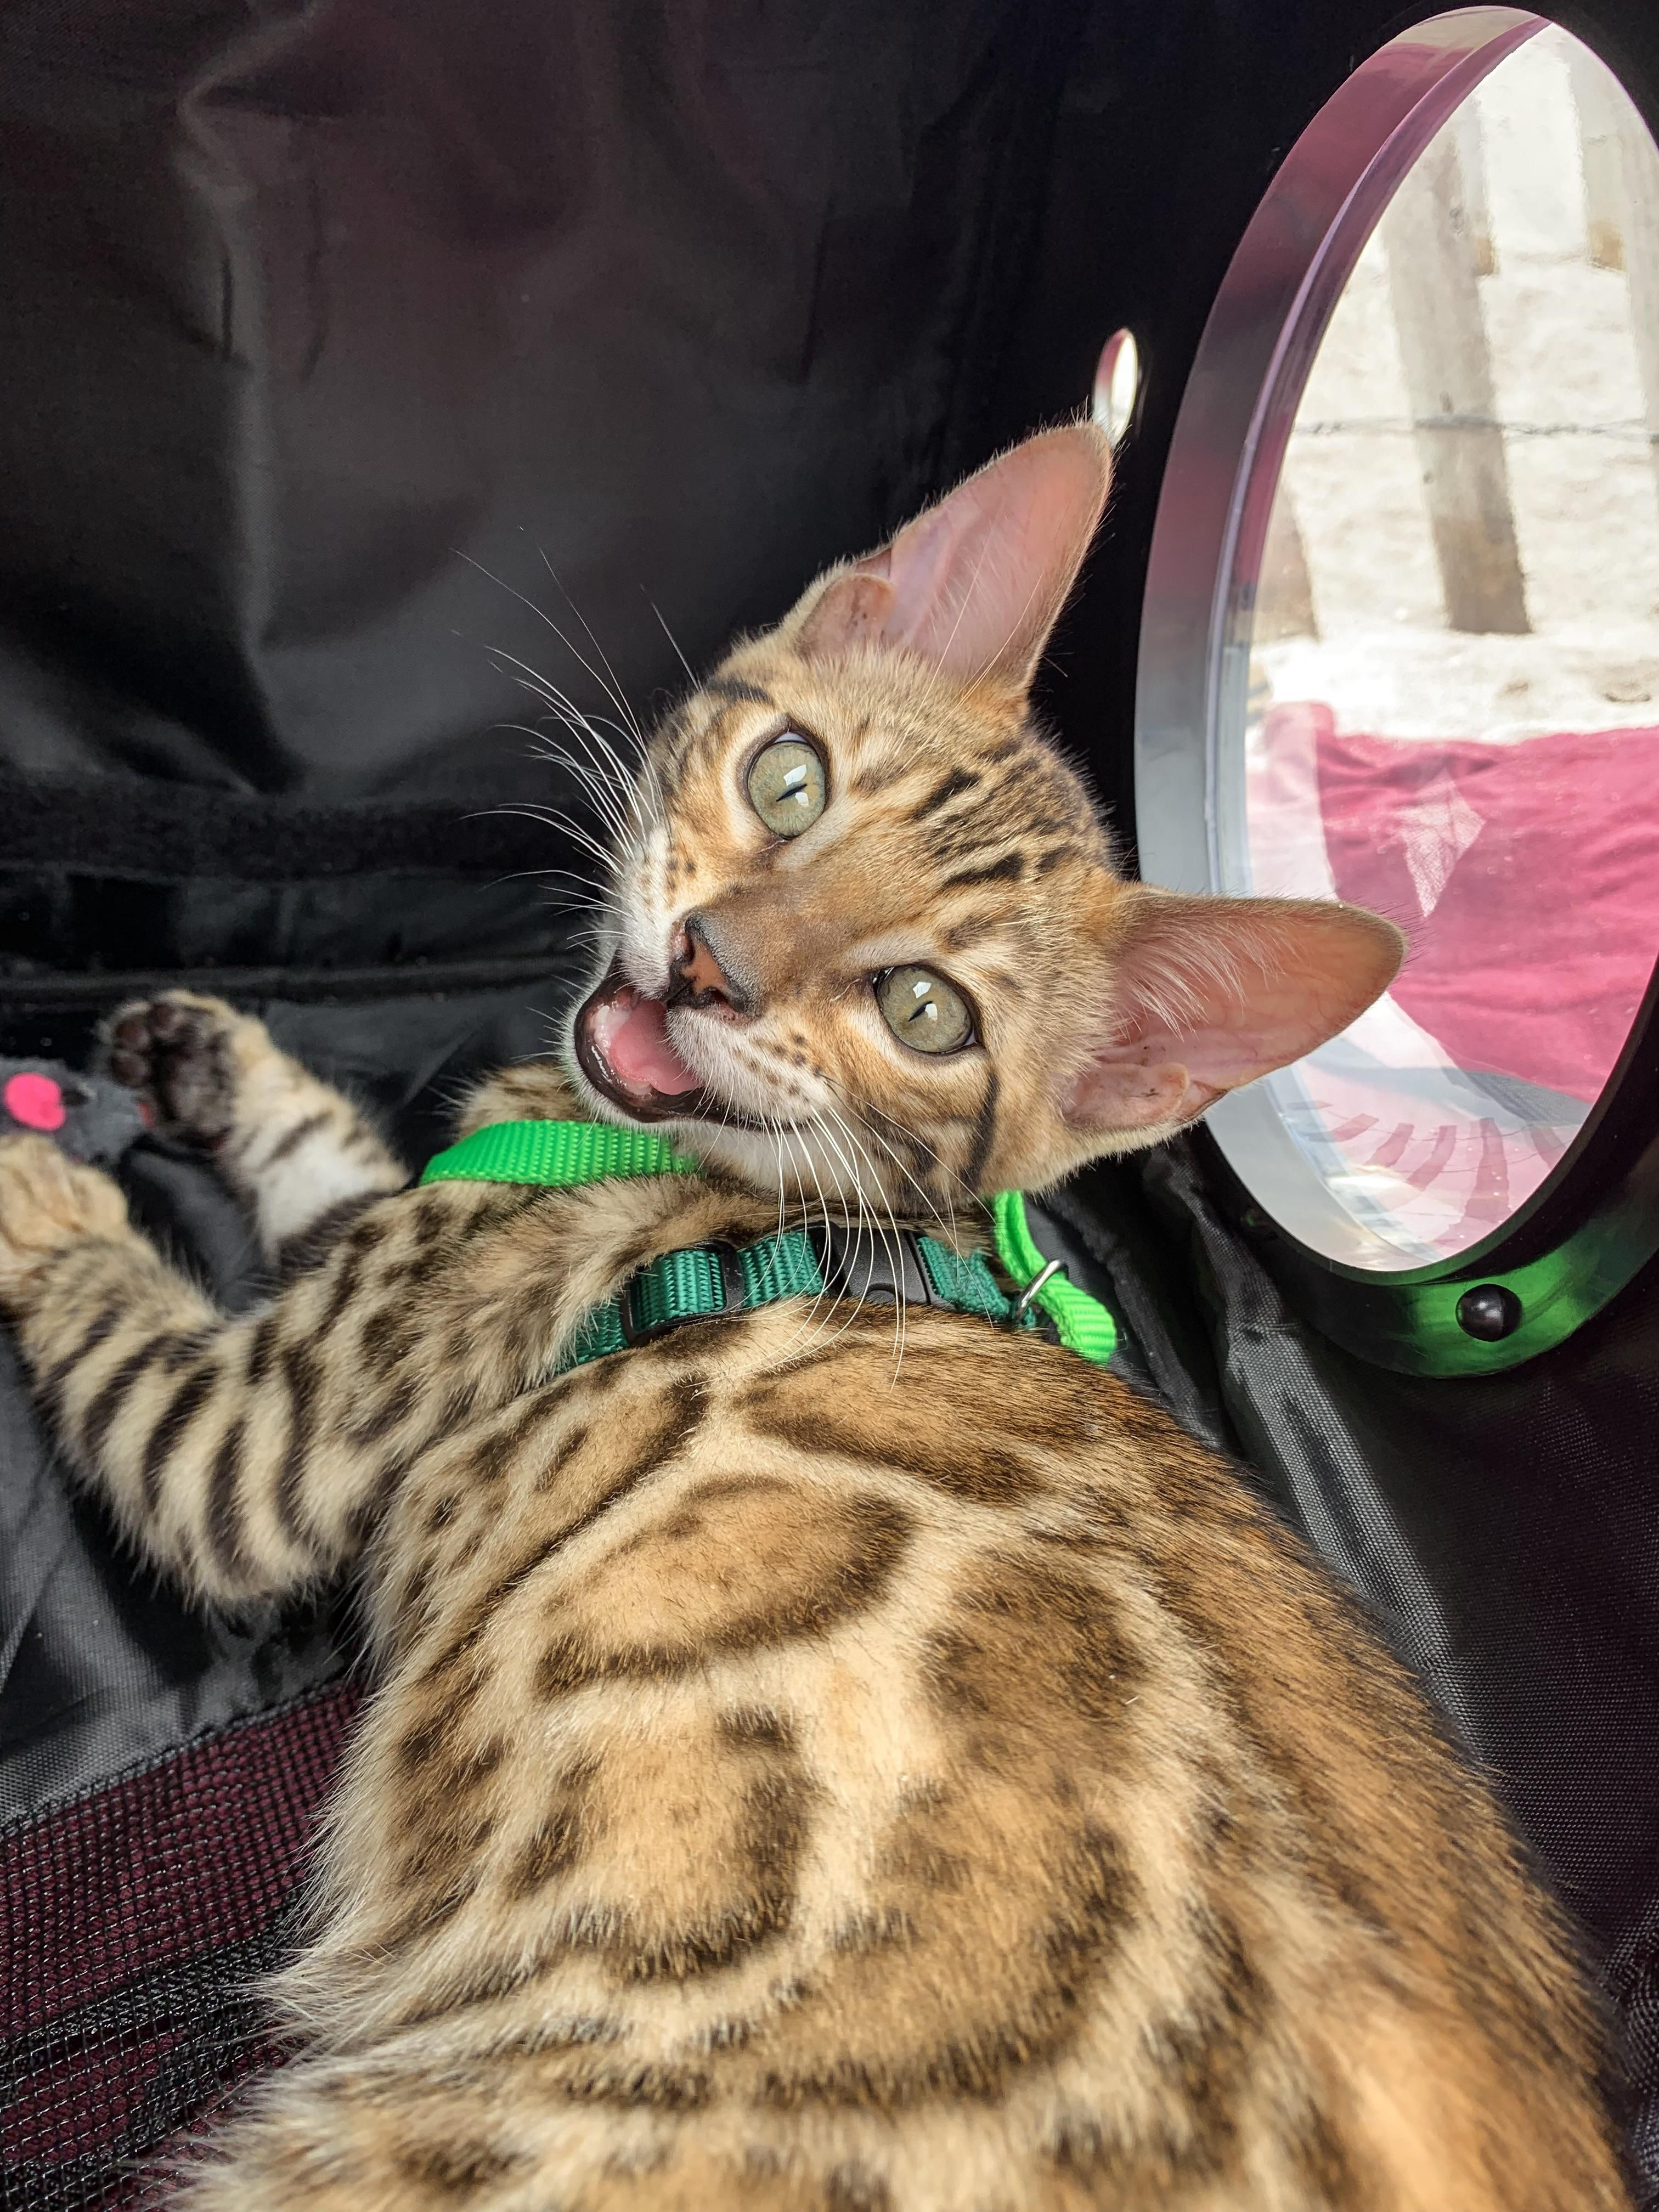 Hiiiii I M Kiwi 4 Month Old Bengal Duhhh I Run My Insta Page Kiiwikat And My Hoomans Help Edit Cute Cats And Kittens Cat Sanctuary Cool Cats